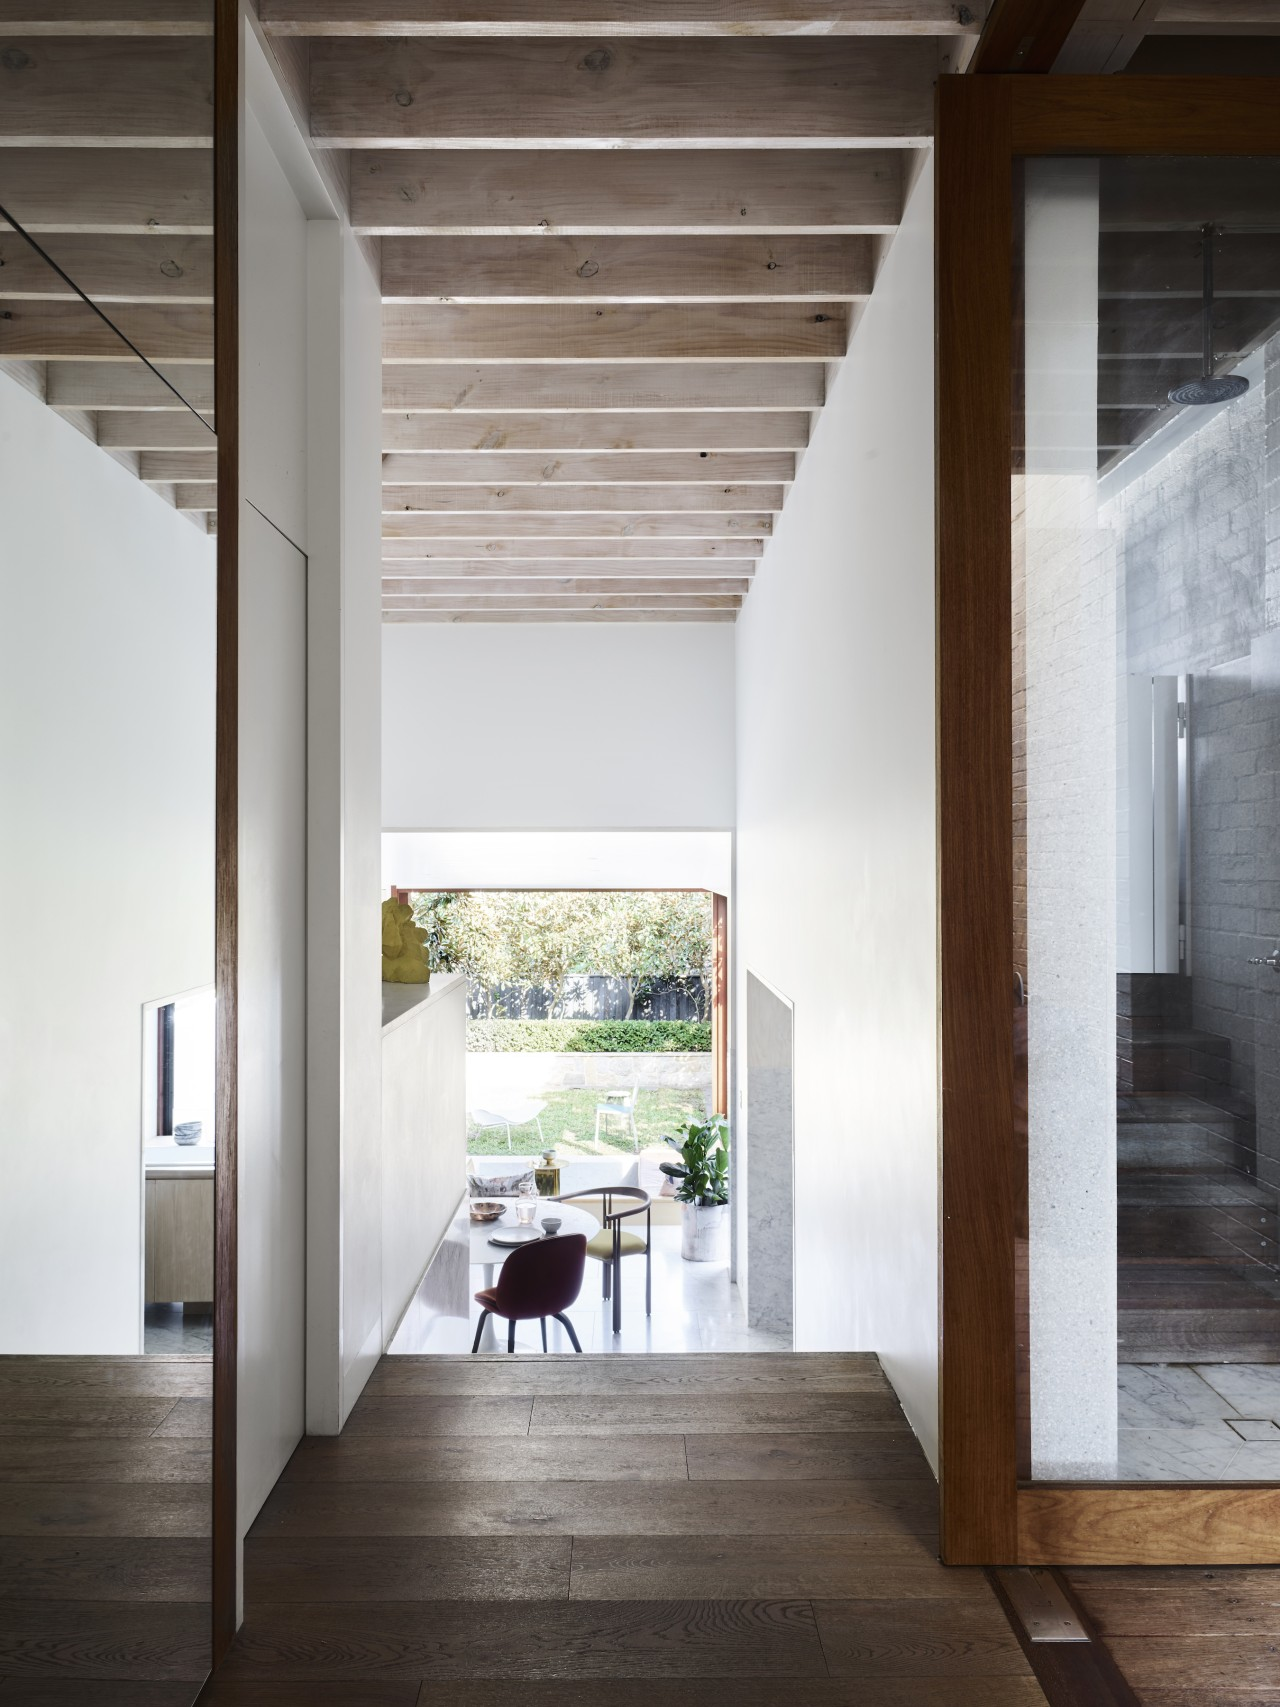 Entry to the kitchen. - A renovation that